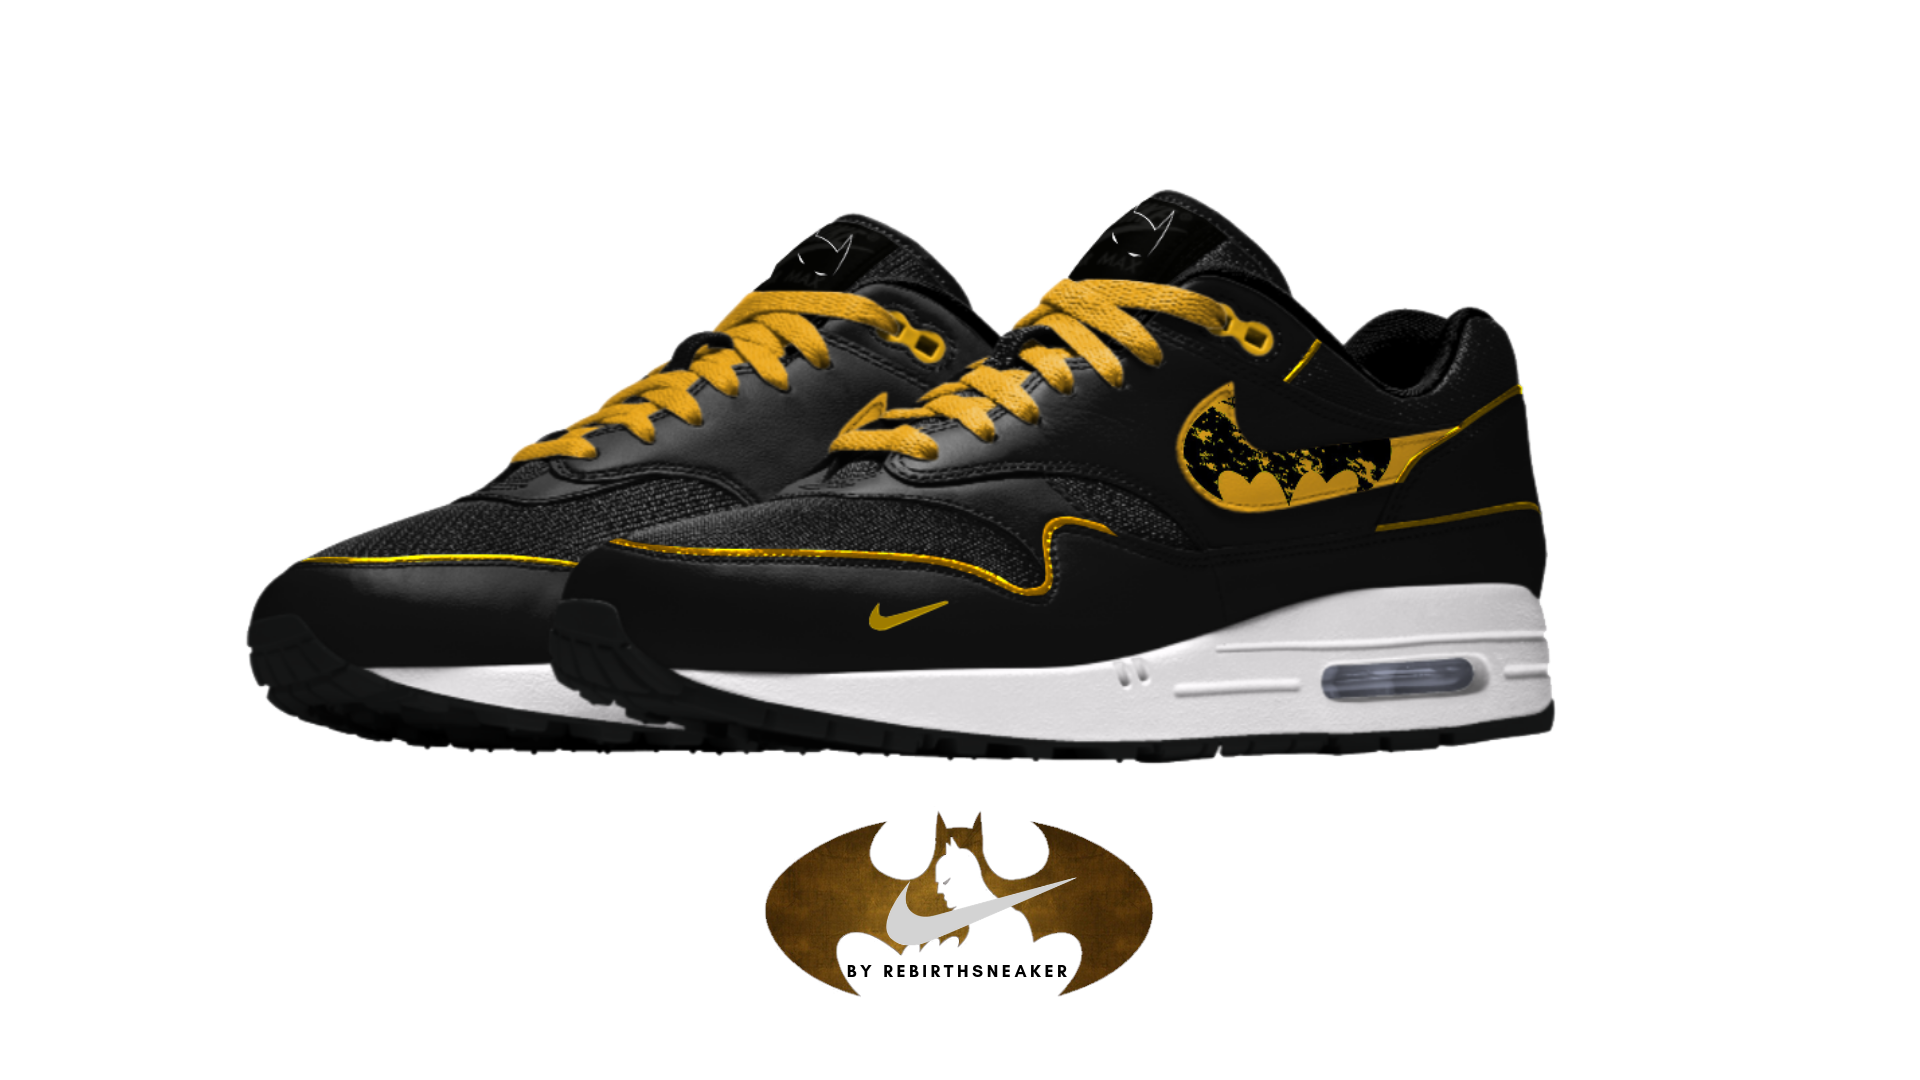 new products a223a a64b5 The lightweight Nike Air Max 1 men s shoe is a revamped version of the  legendary Air Max design. This sneaker is half ID AND HALF CUSTOM. We Used  our ...